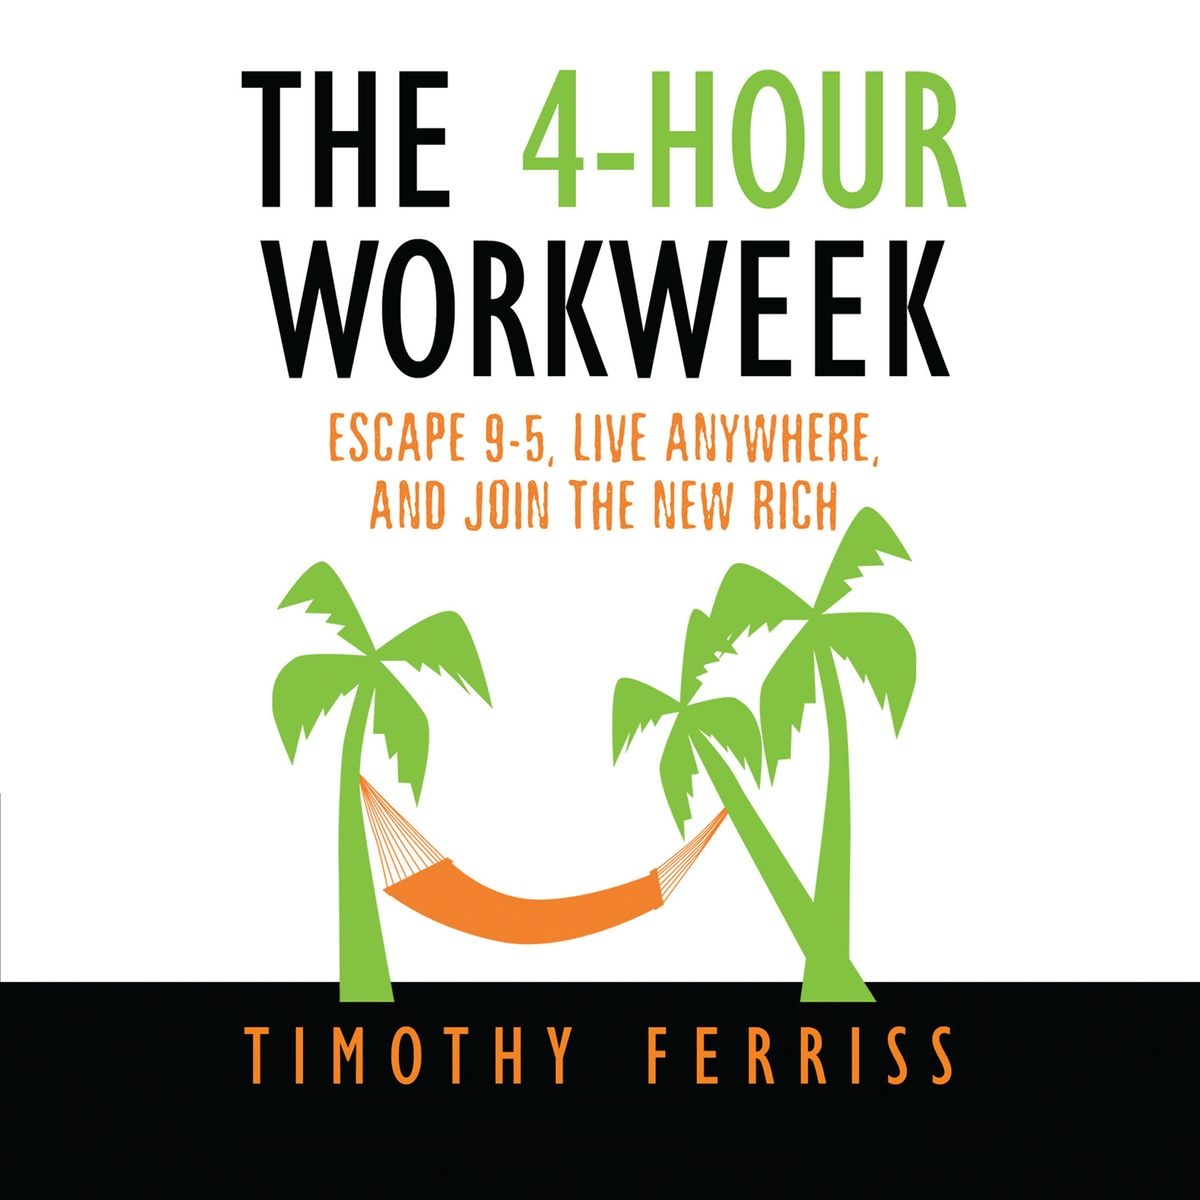 The 4-Hour Workweek - Timothy Ferriss - reviews, quotes, summary